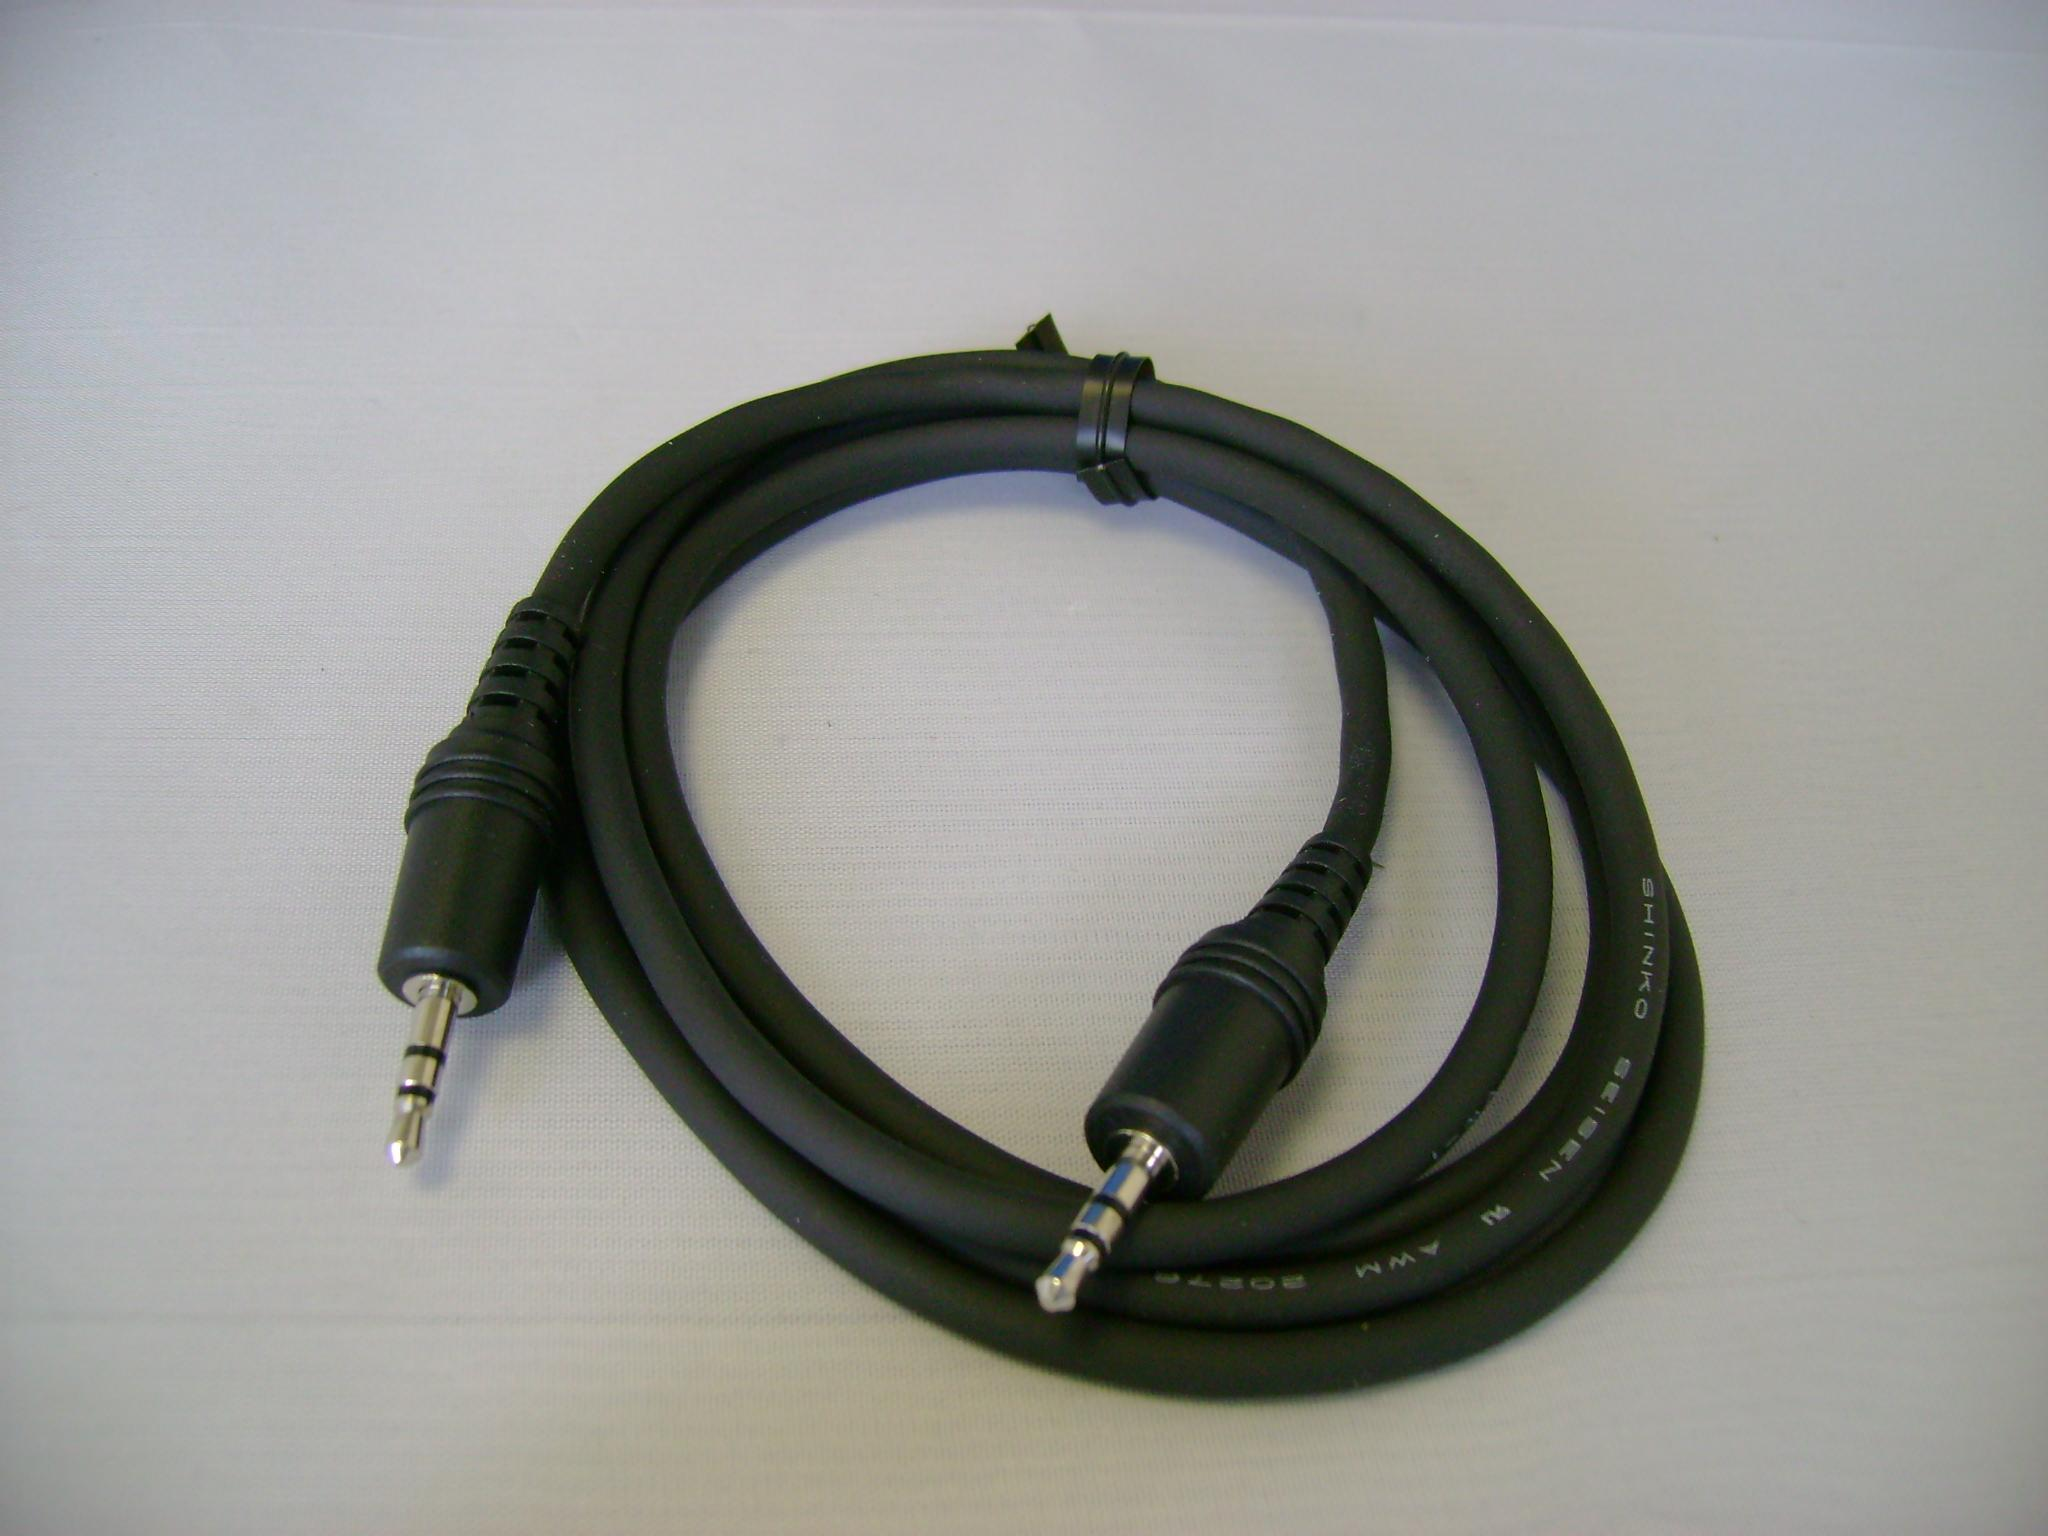 Yaesu CT-144 cloning cable for VX-8GE